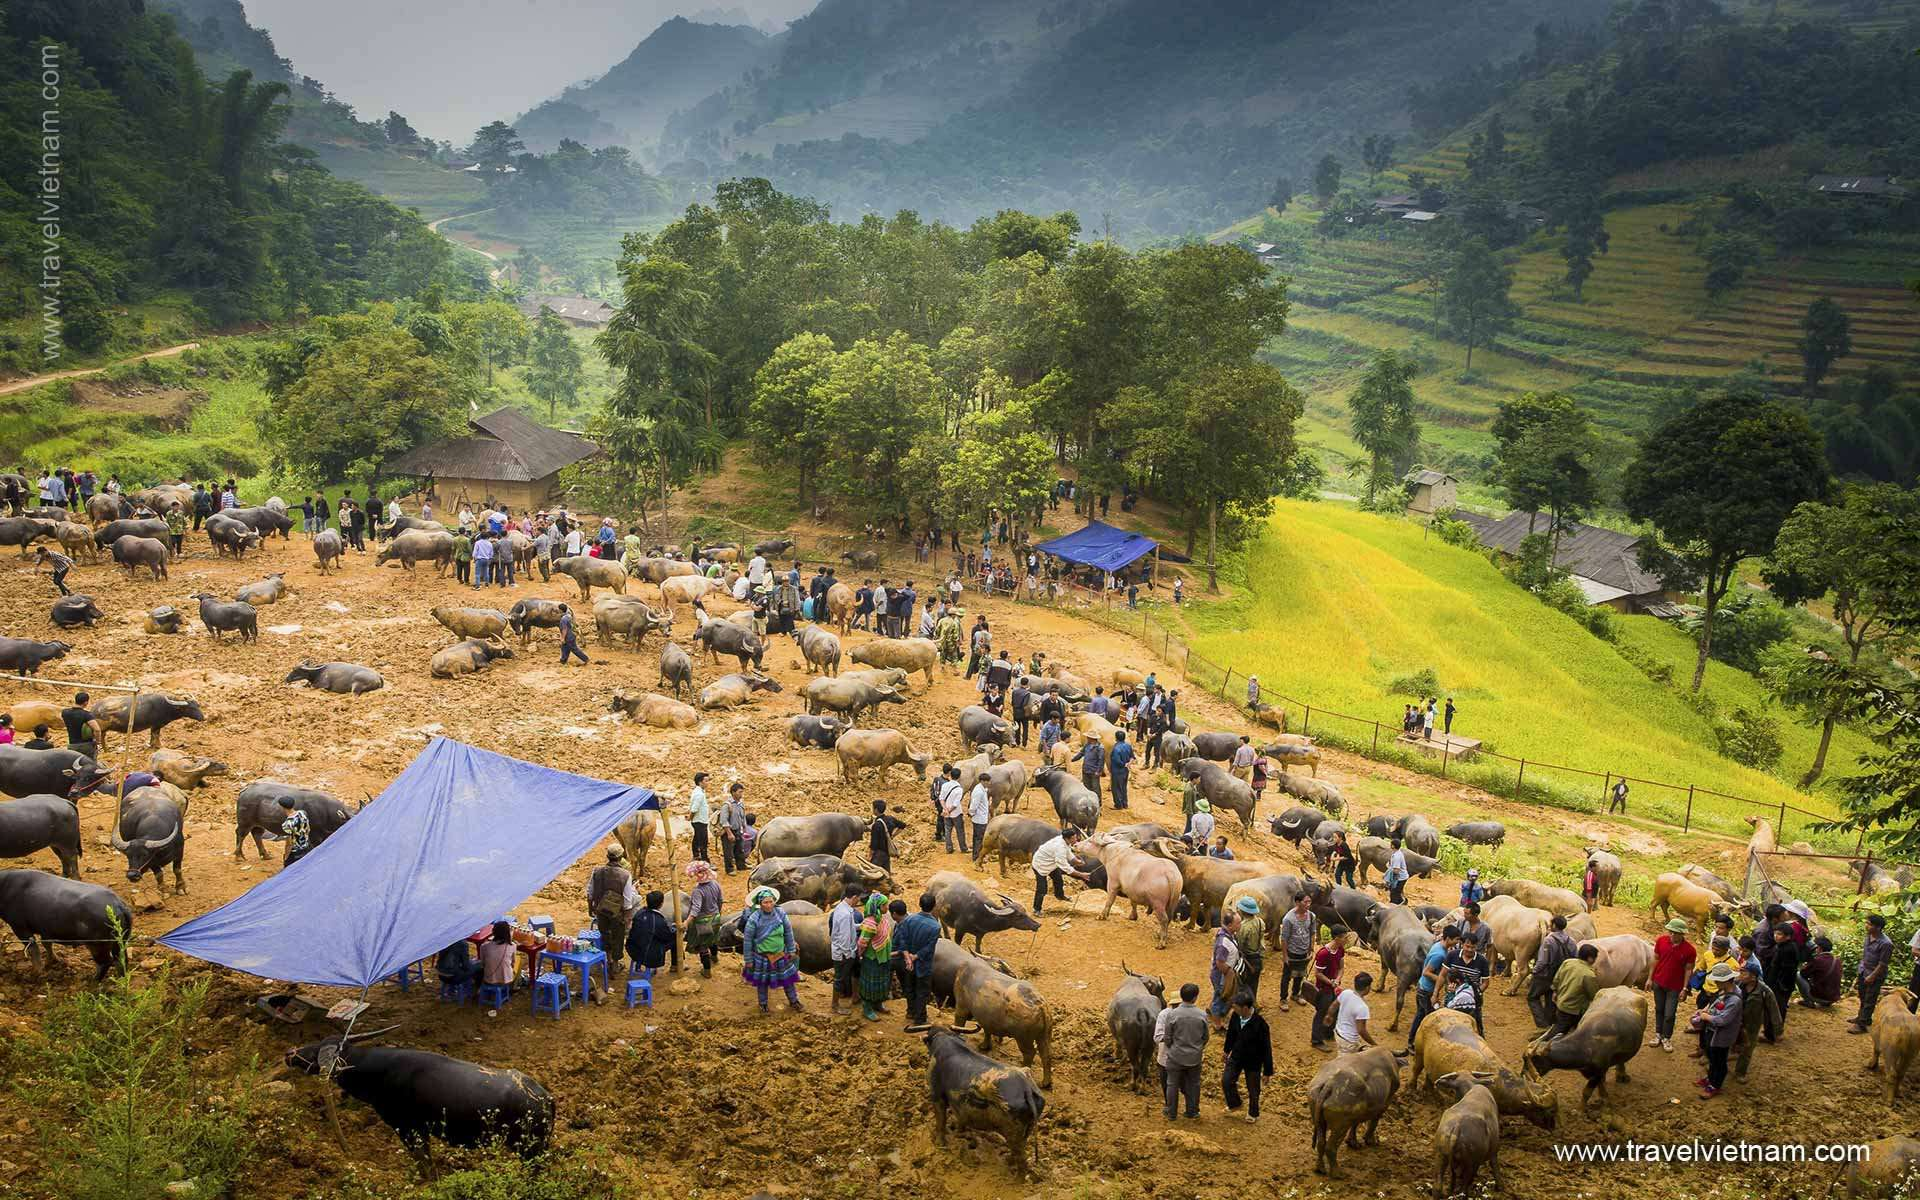 North Vietnam for Adventure - 11 Days